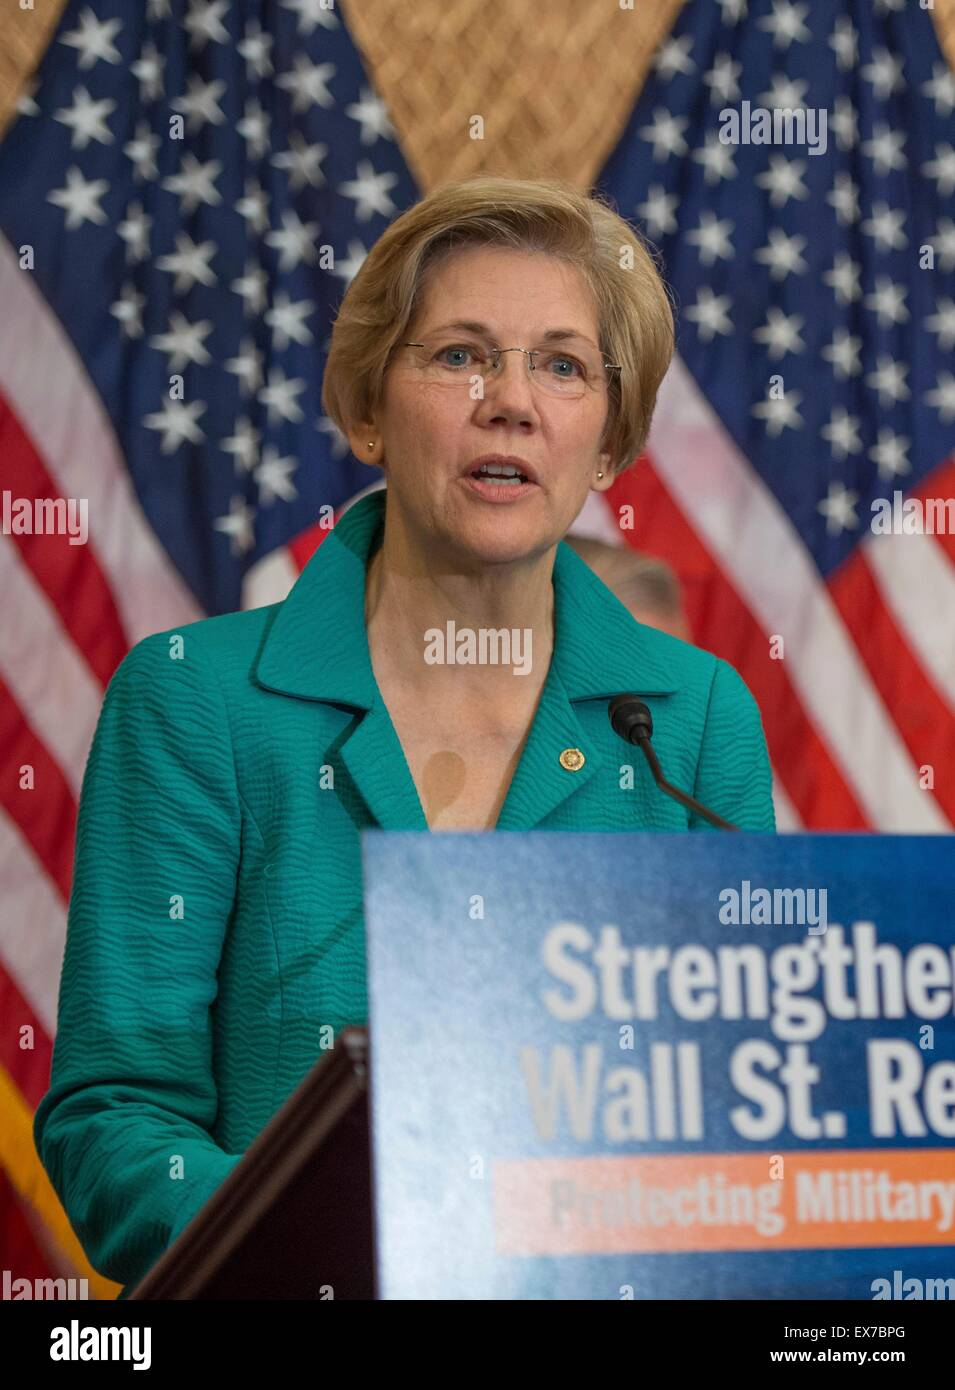 US Senator Elizabeth Warren joined by other Democratic Senators calls for passage of the Military Consumer Protection - Stock Image